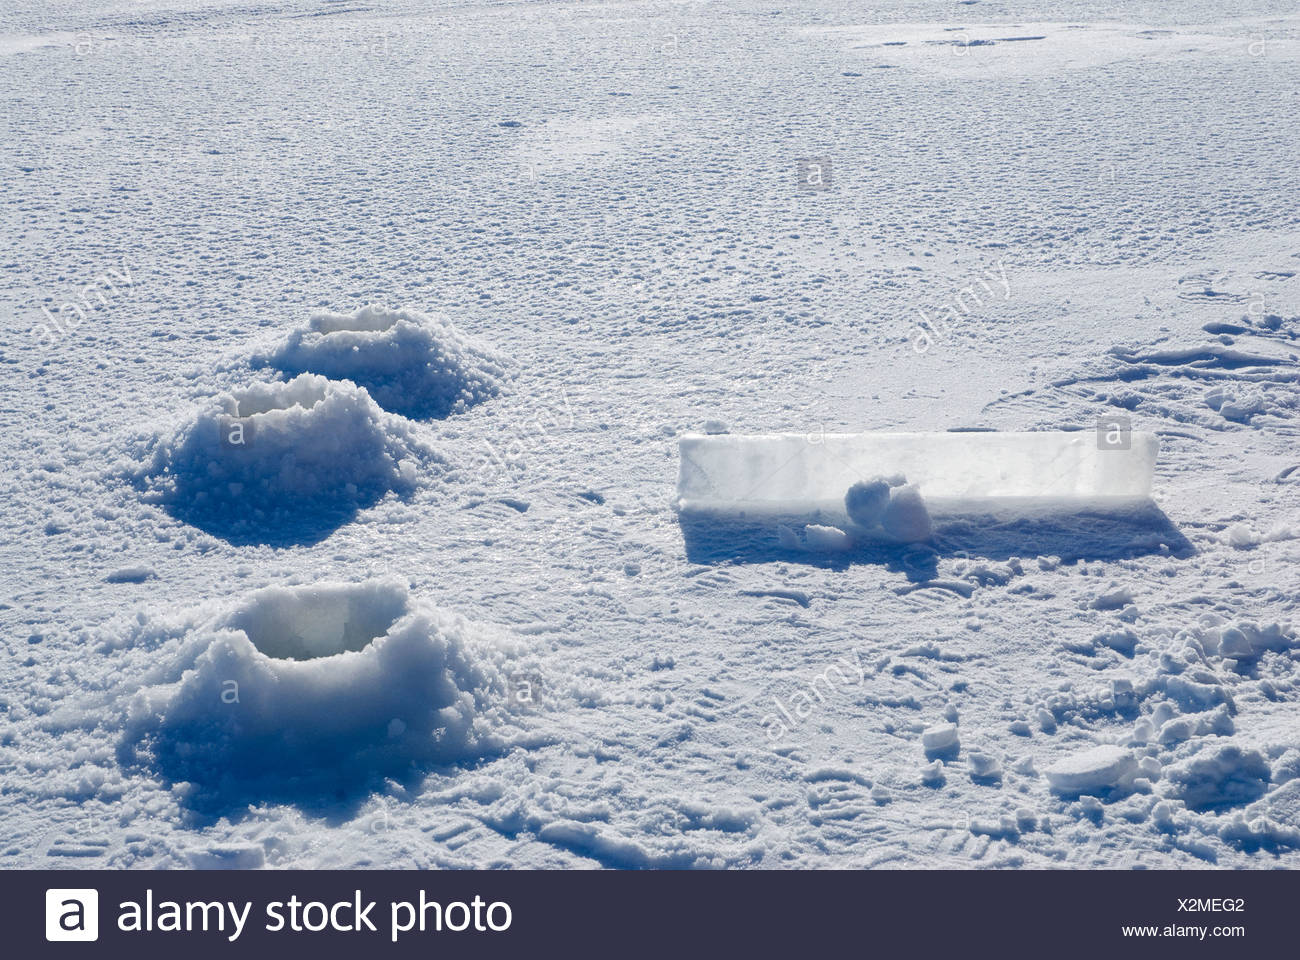 Alaska, Bering Sea. Studying ice condiitons and the changing ecosystem due to global warming. Ice cores from new sea ice. - Stock Image